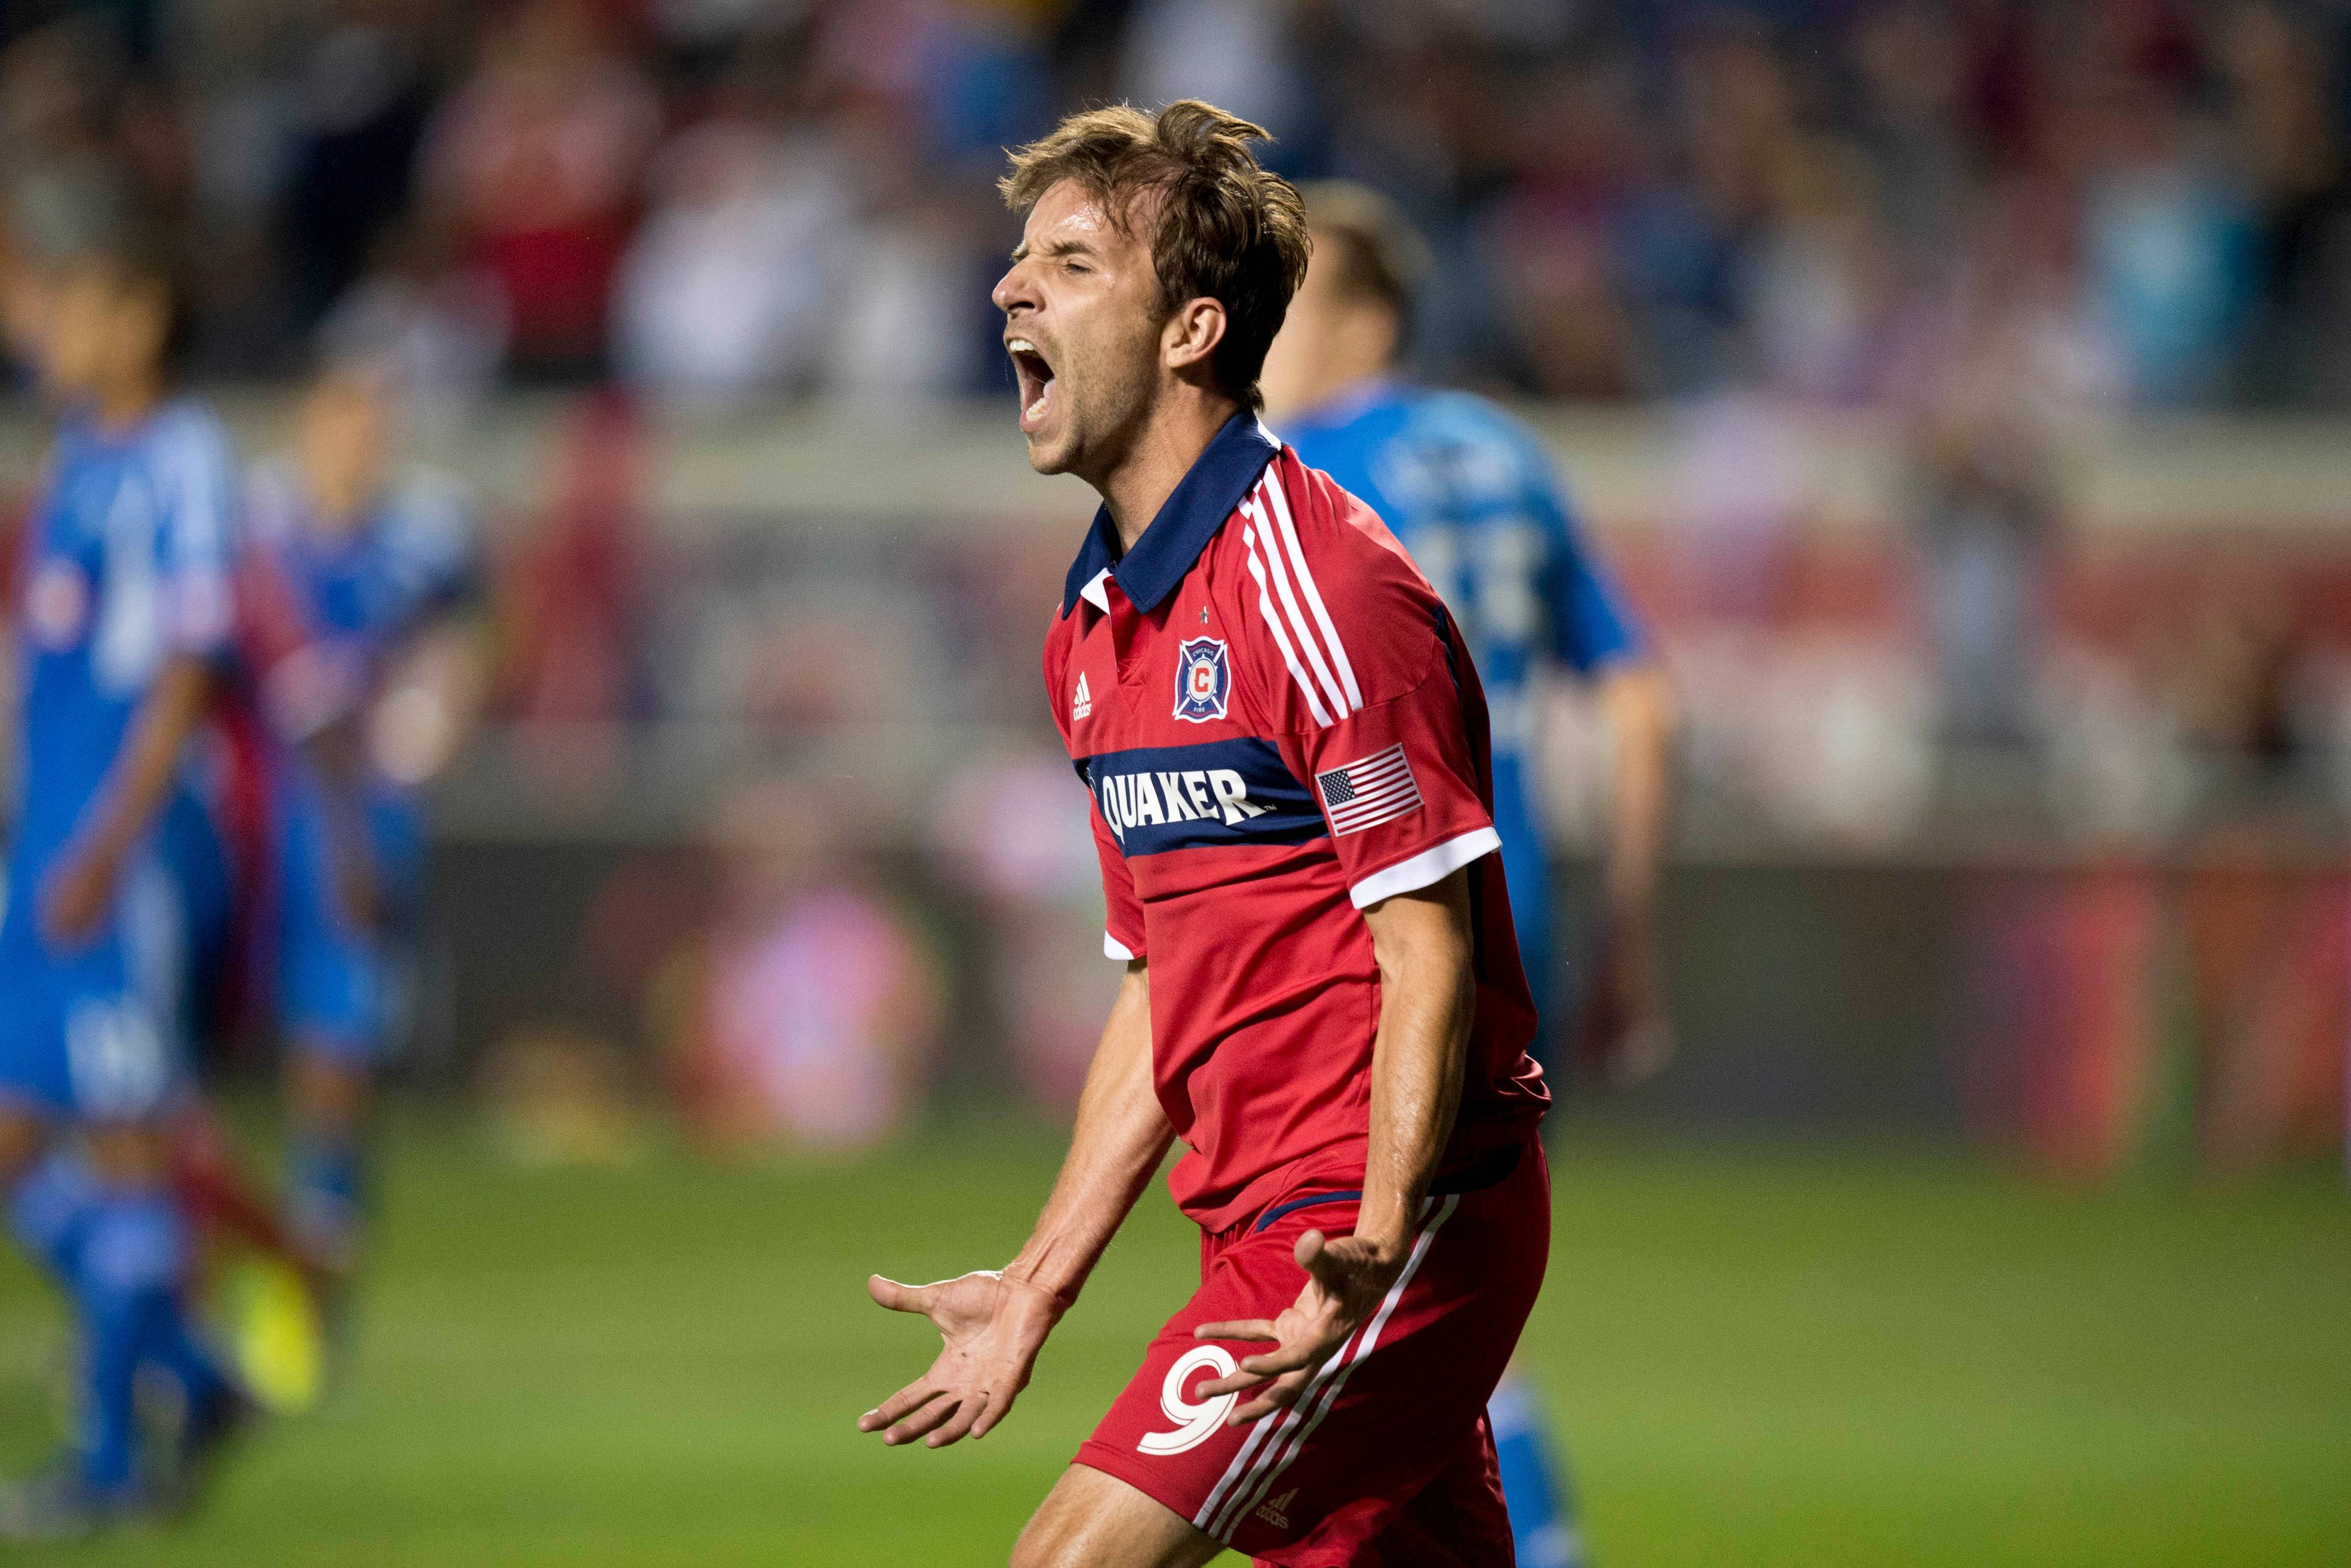 Chicago Fire forward Mike Magee arrived at Chicago Fire preseason training camp in Arizon on Wednesday night, team officials said.